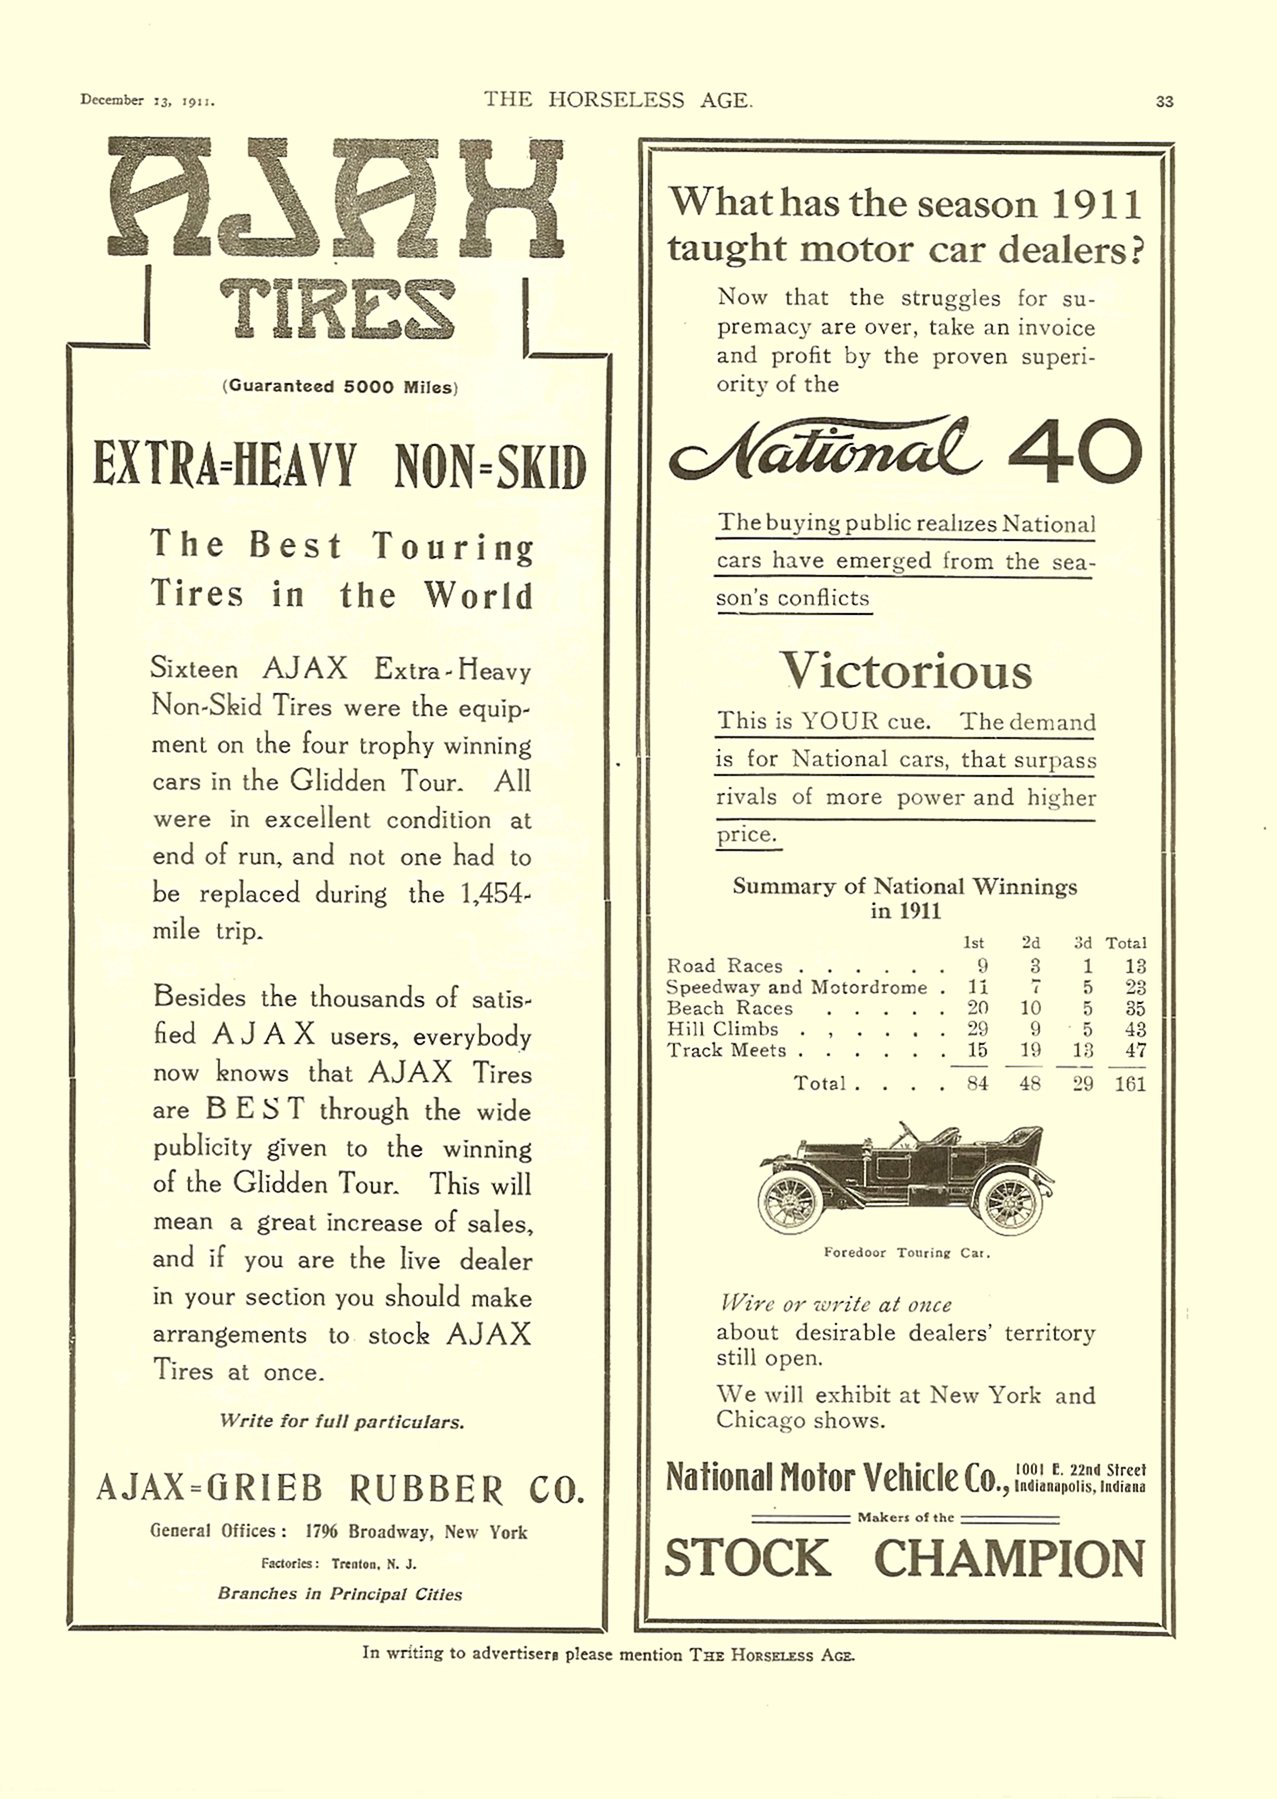 1911 12 13 National 40 Victorious THE HORSELESS AGE December 13, 1911 Vol. 28 No. 24 9″x12″ page 33